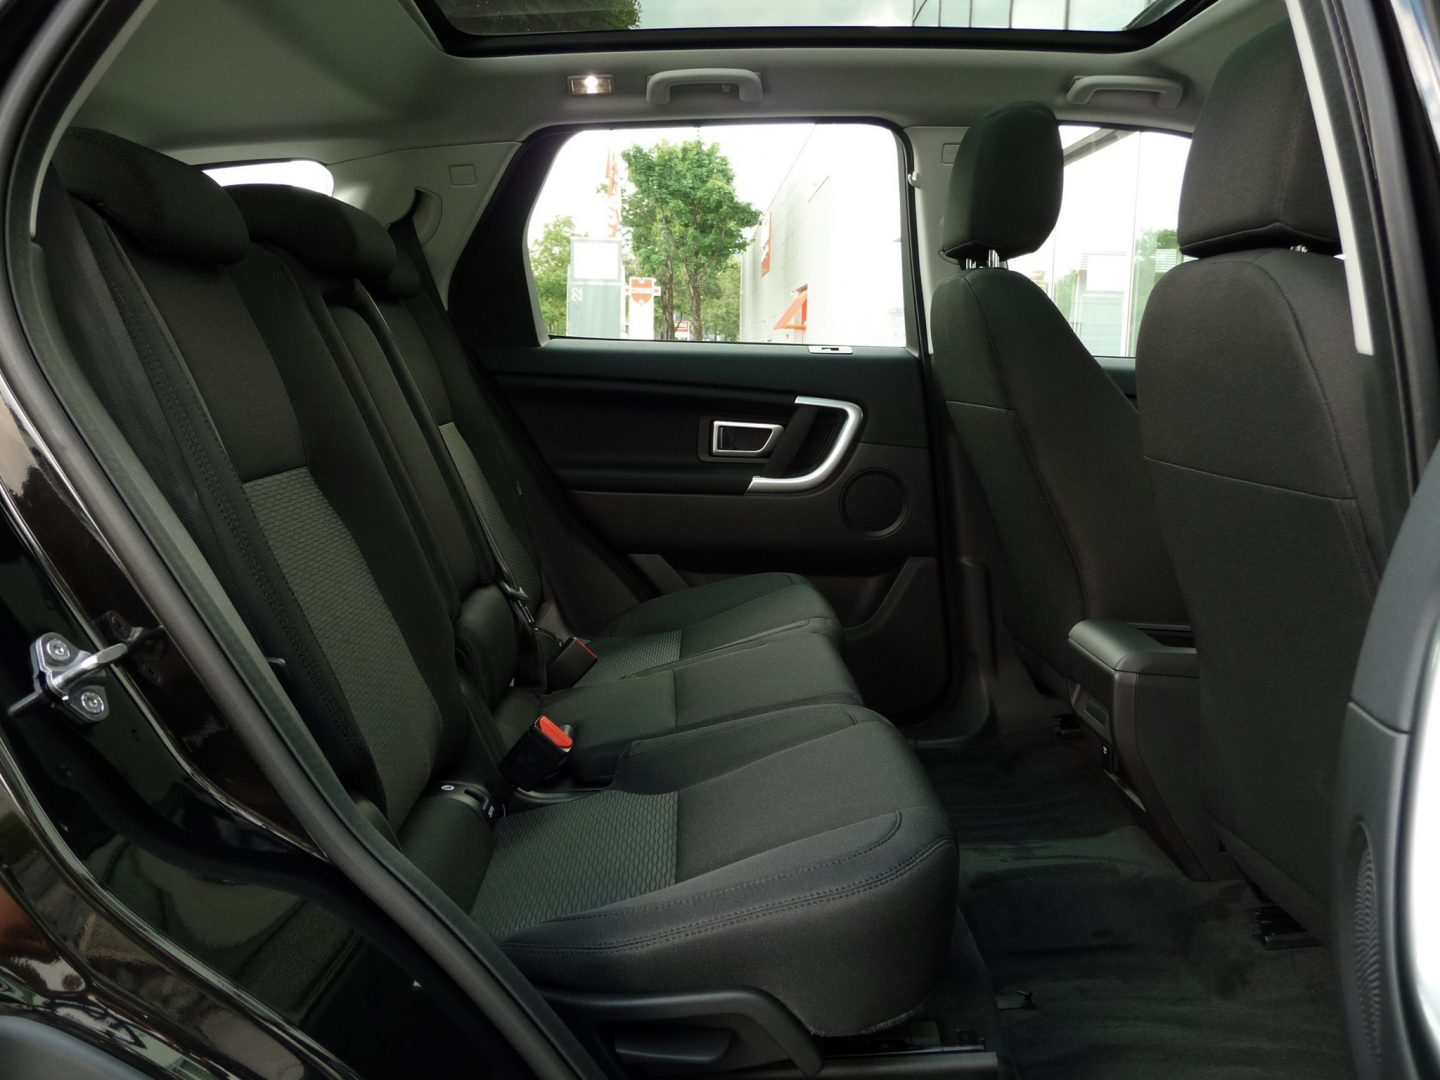 AIL Land Rover DISCOVERY SPORT Si4 SE PANORAMA  3